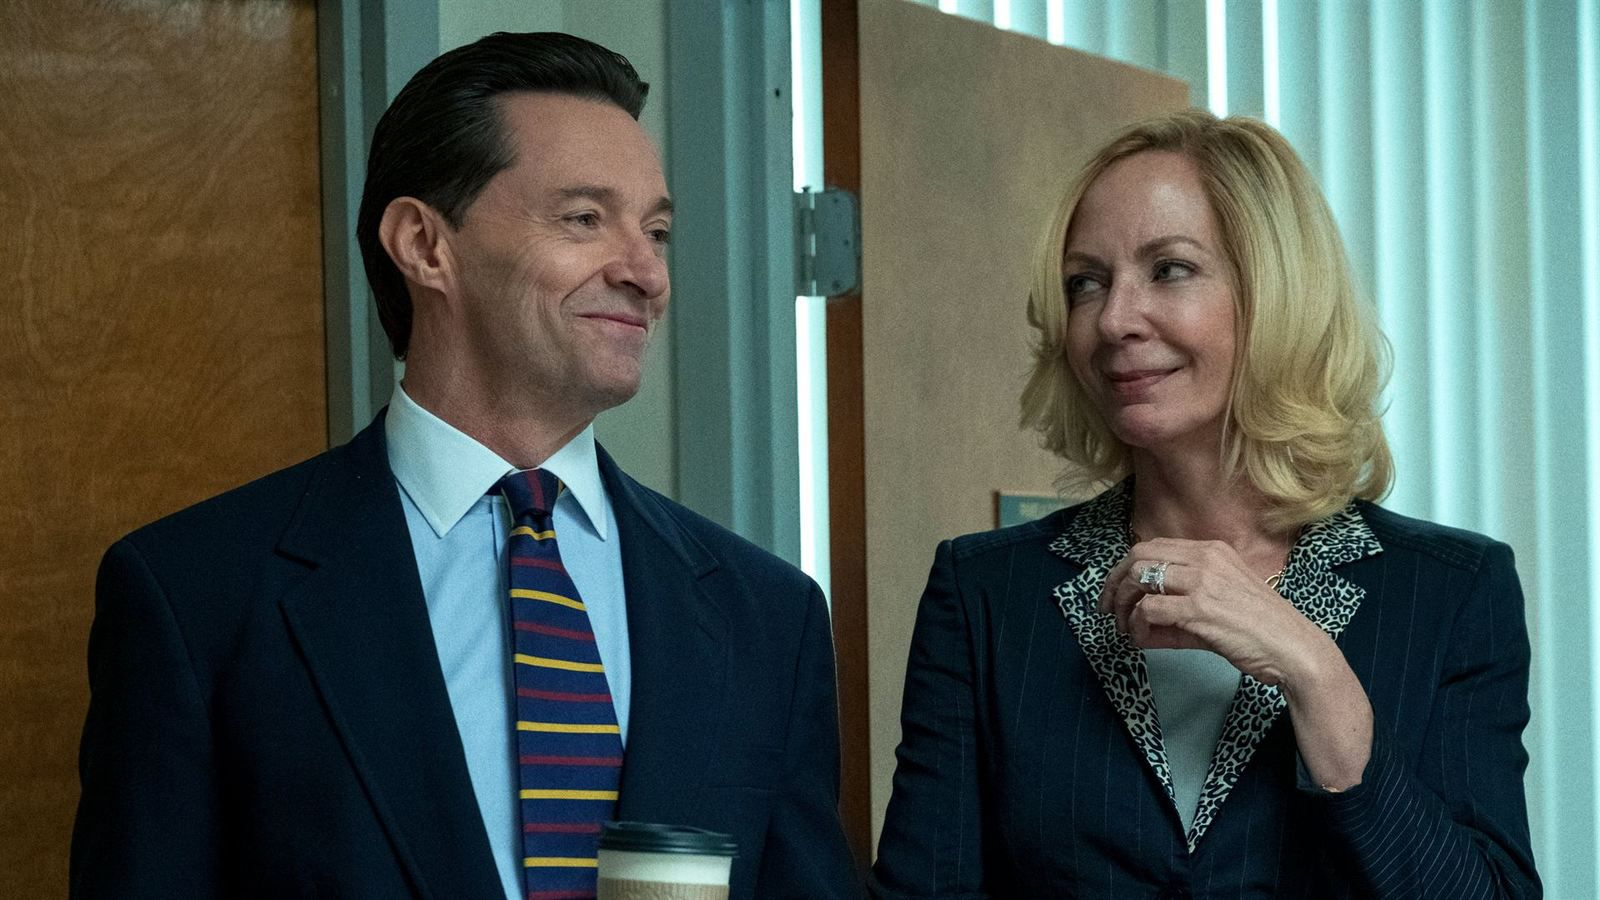 Bad Education (BANDE-ANNONCE) avec Hugh Jackman, Allison Janney - En DVD le 16 septembre 2020